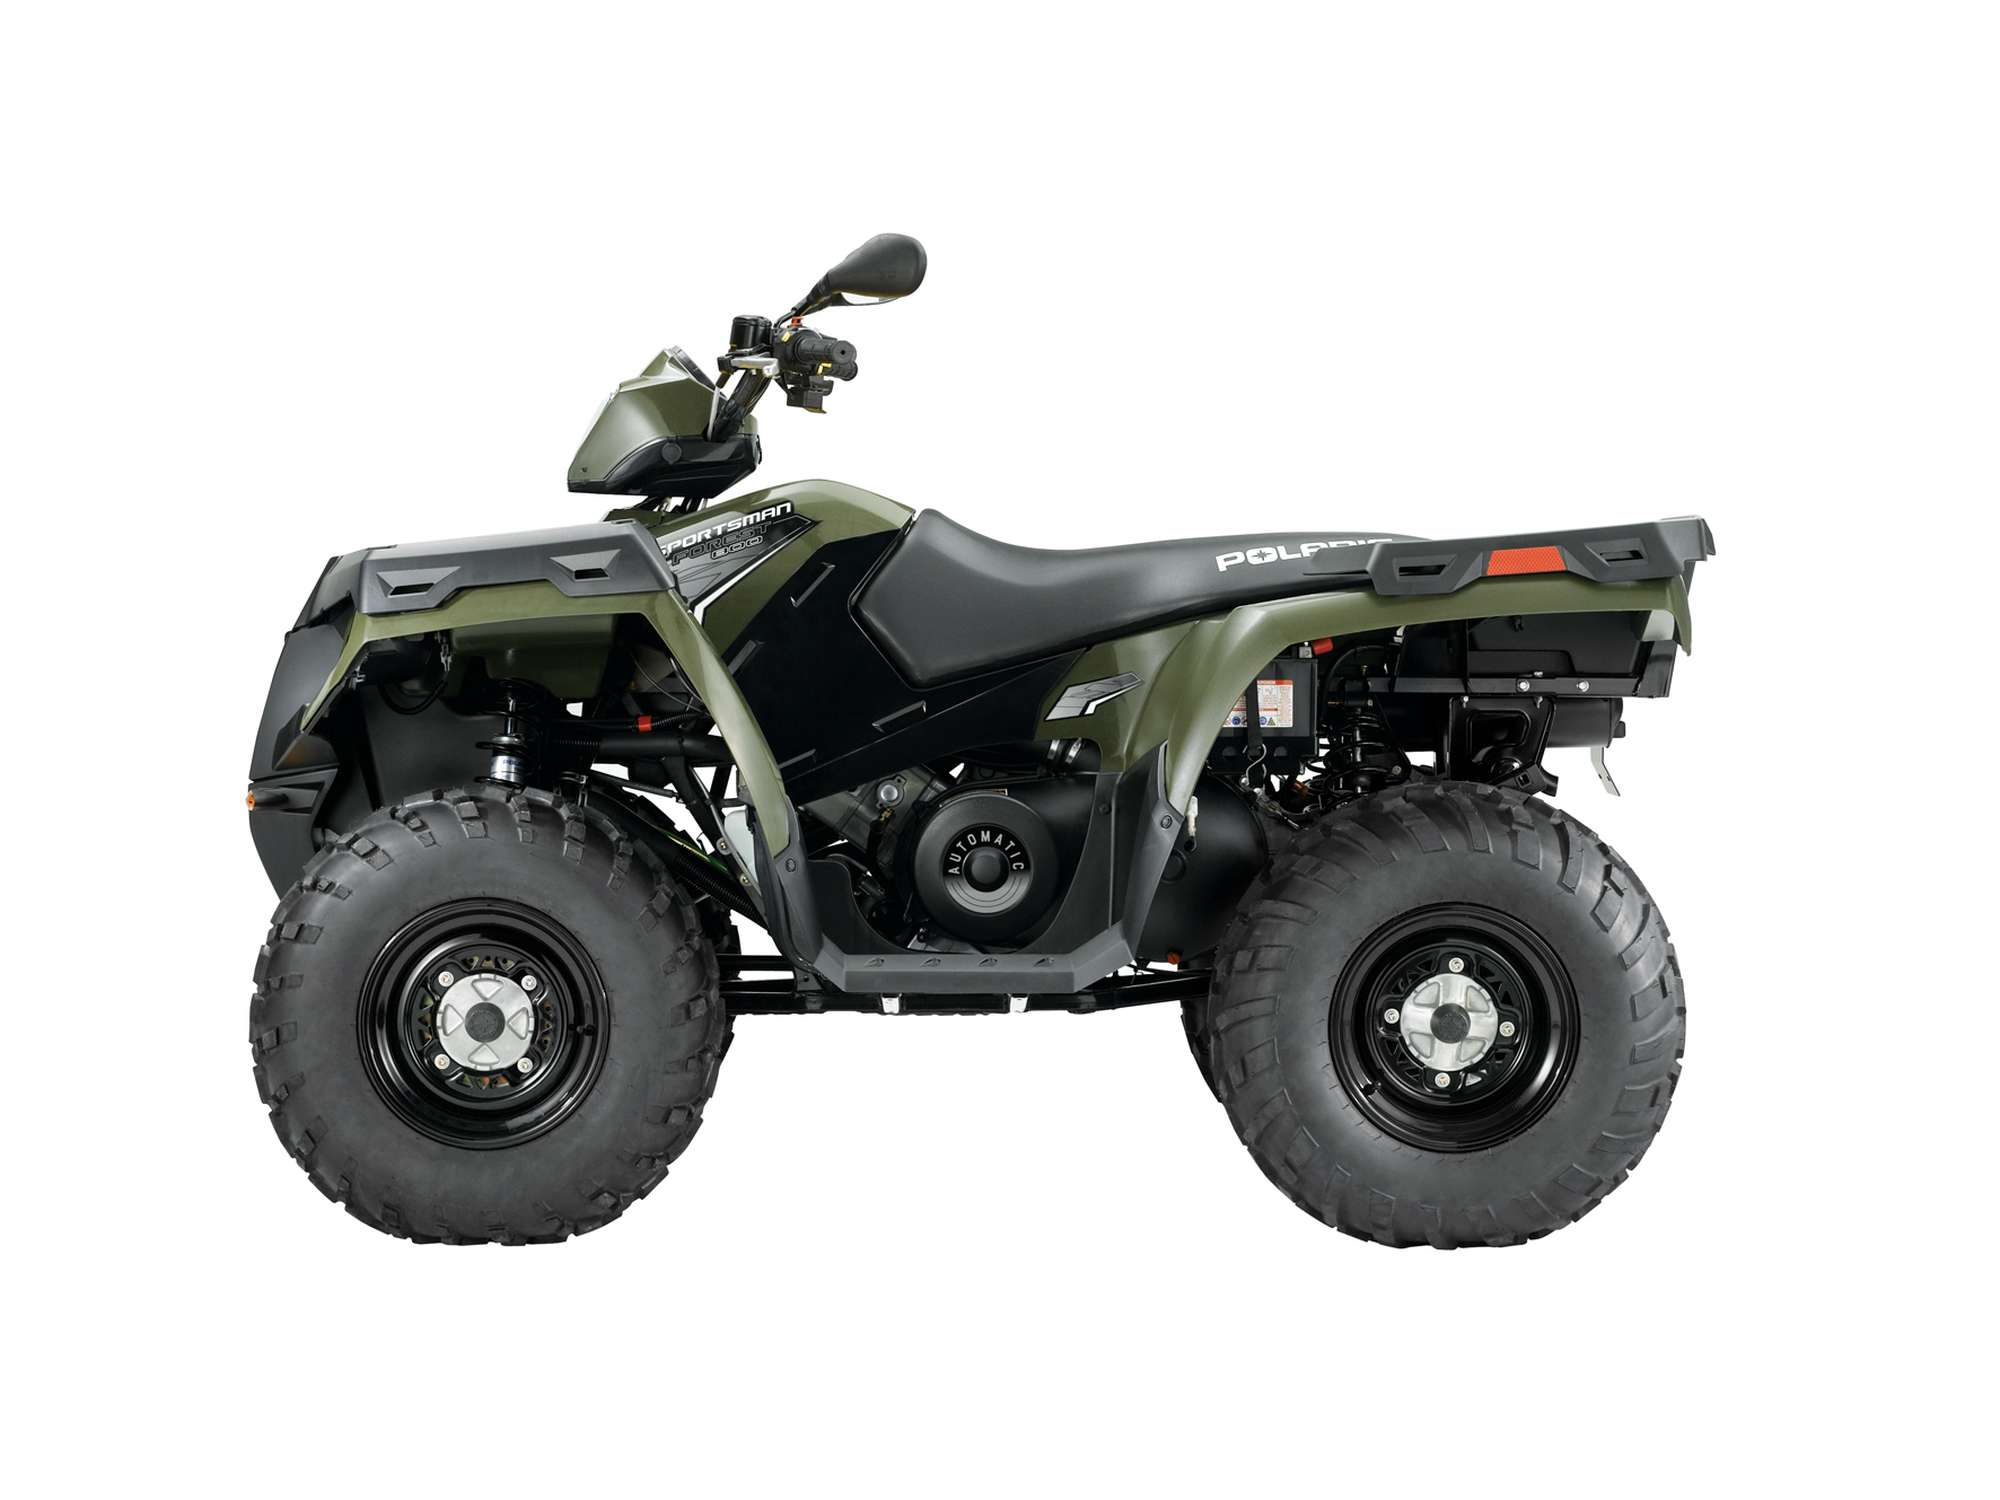 2013 Polaris Wiring 500 Ho Diagram Will Be A Thing 2005 Sportsman 700 Fuel Filter Get Free Image Specs